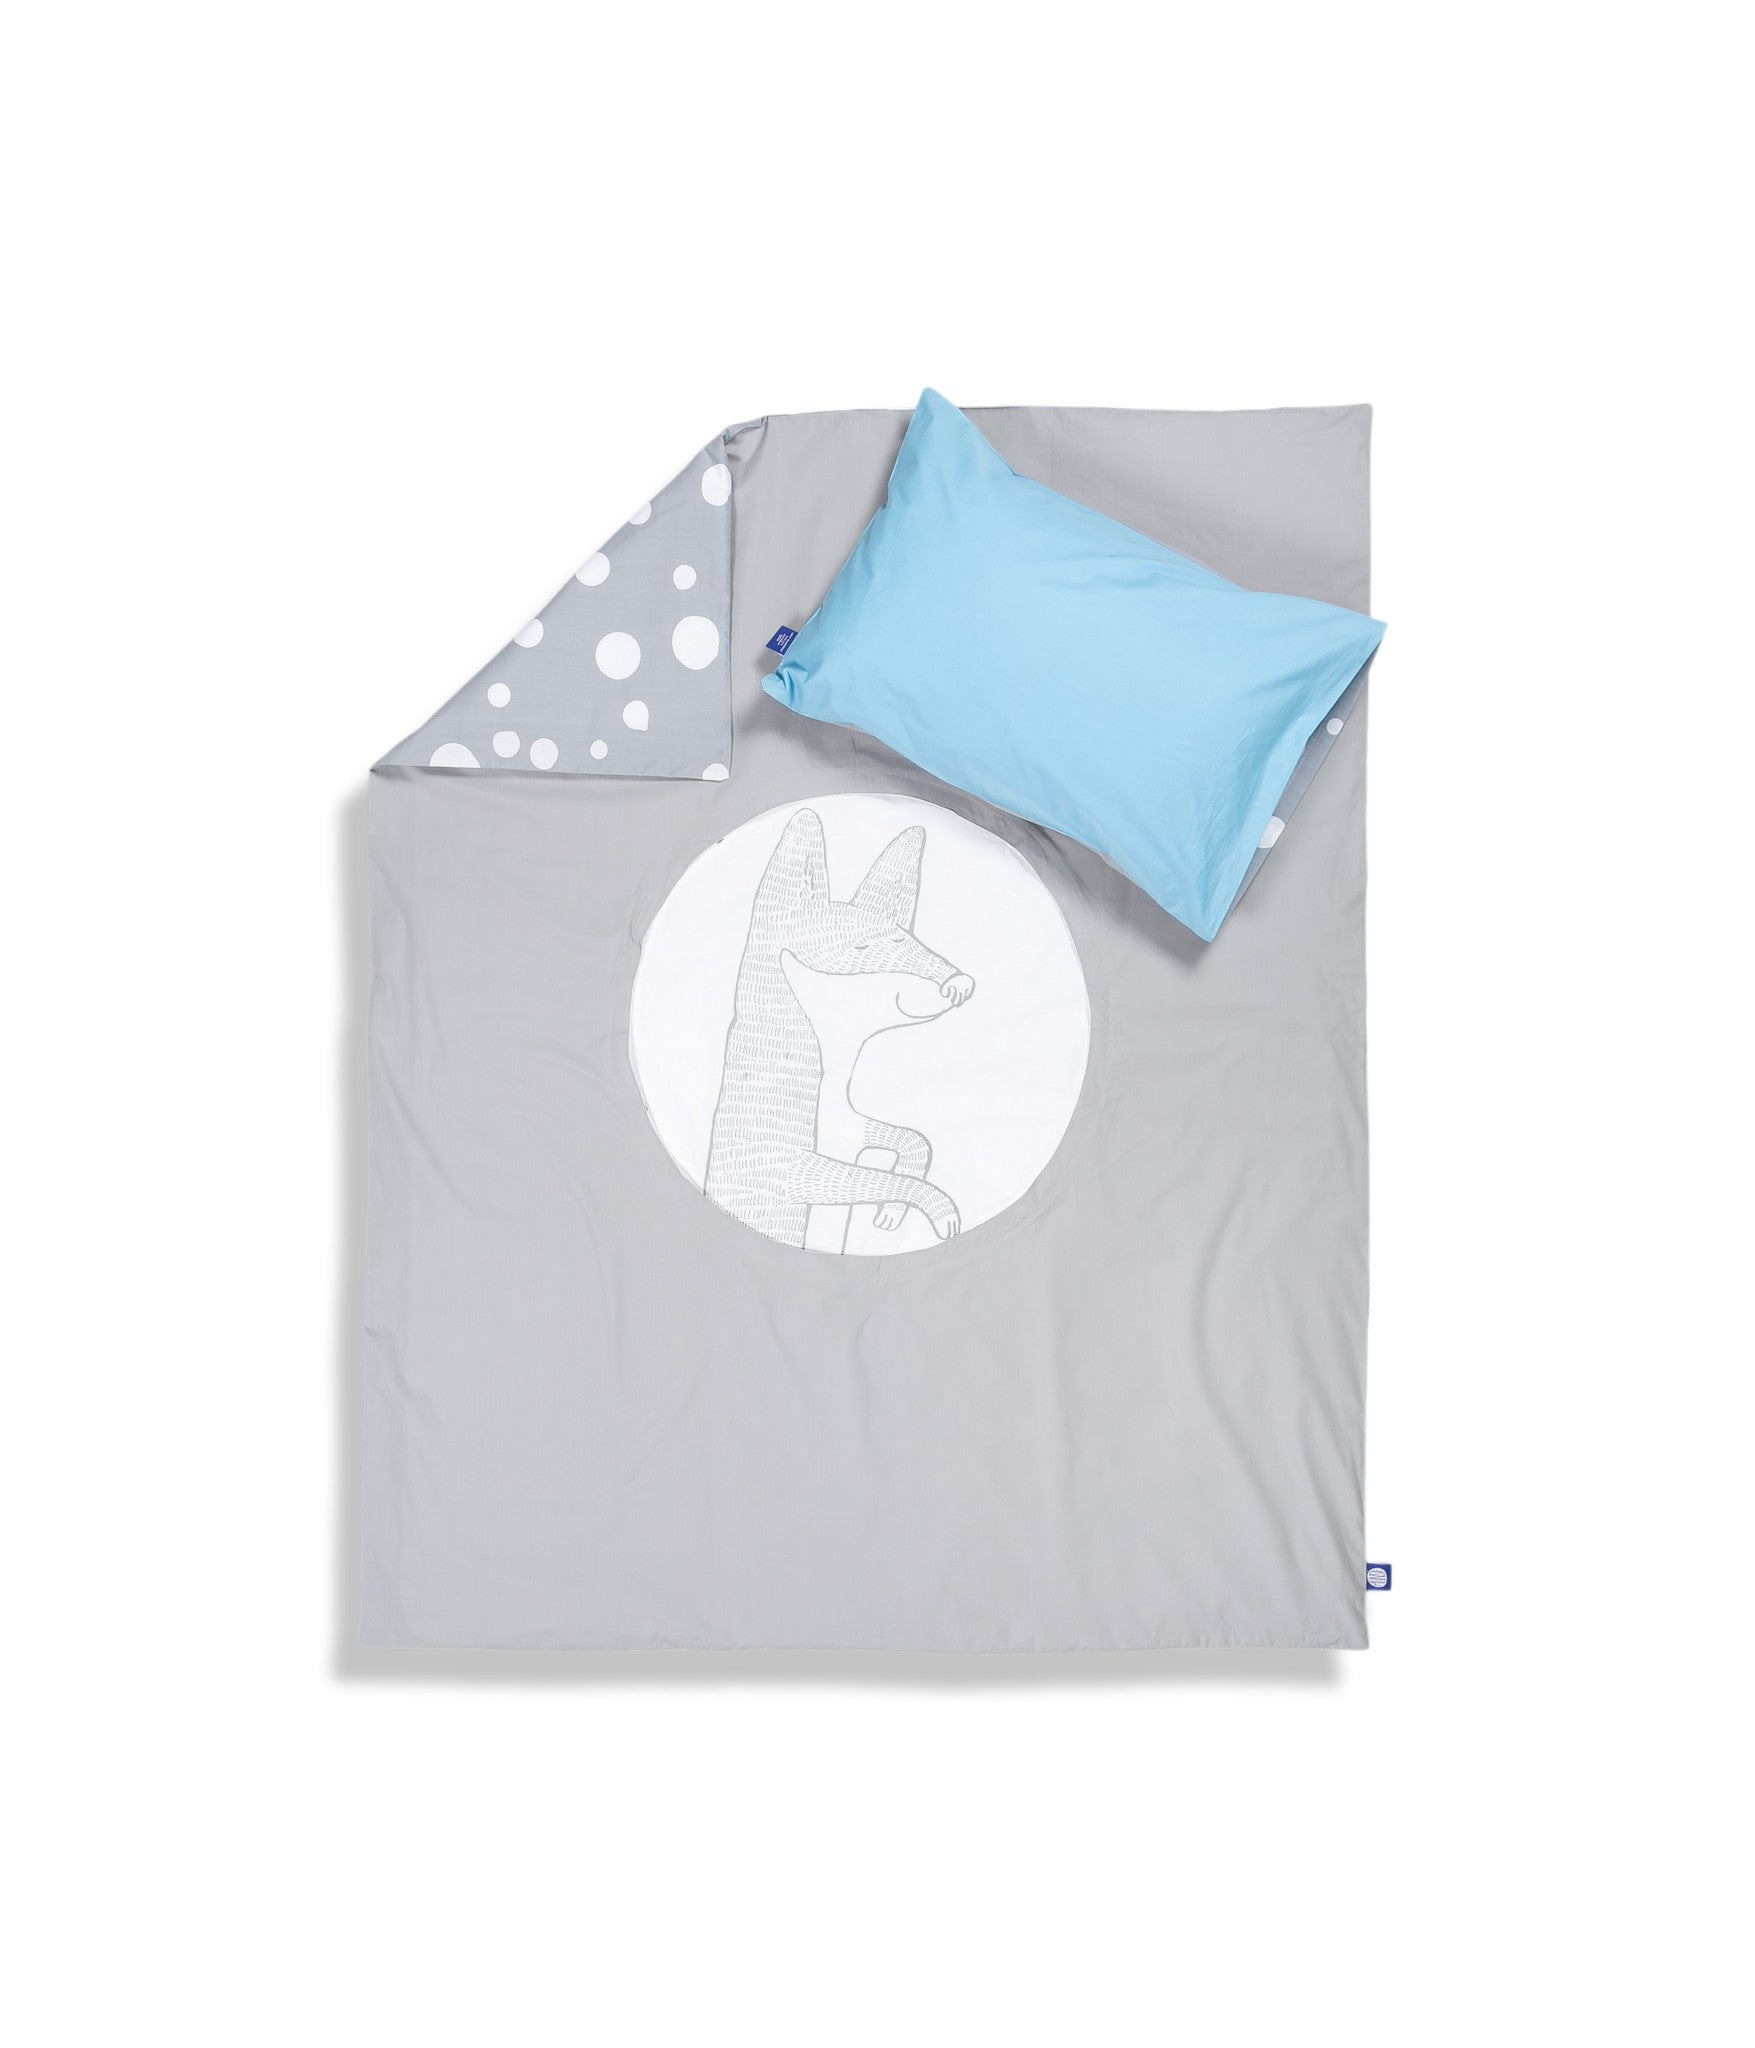 Organic cotton cot bed set. Baby bedding. Blue pillow case and grey duvet cover with fox. Dotted pattern bed linen. Customised bedding.